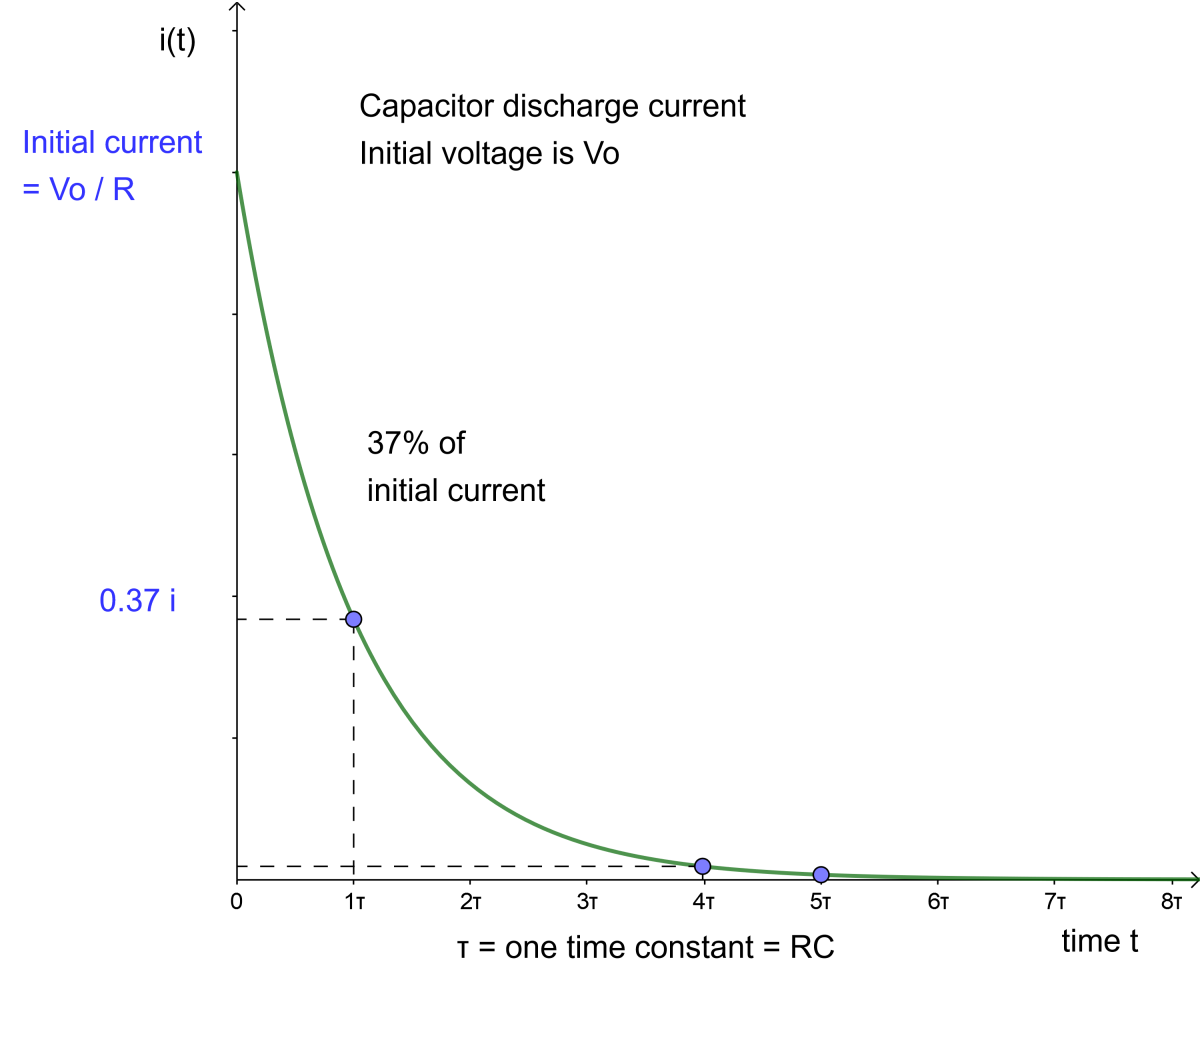 Graph of discharge current through a capacitor in an RC circuit.